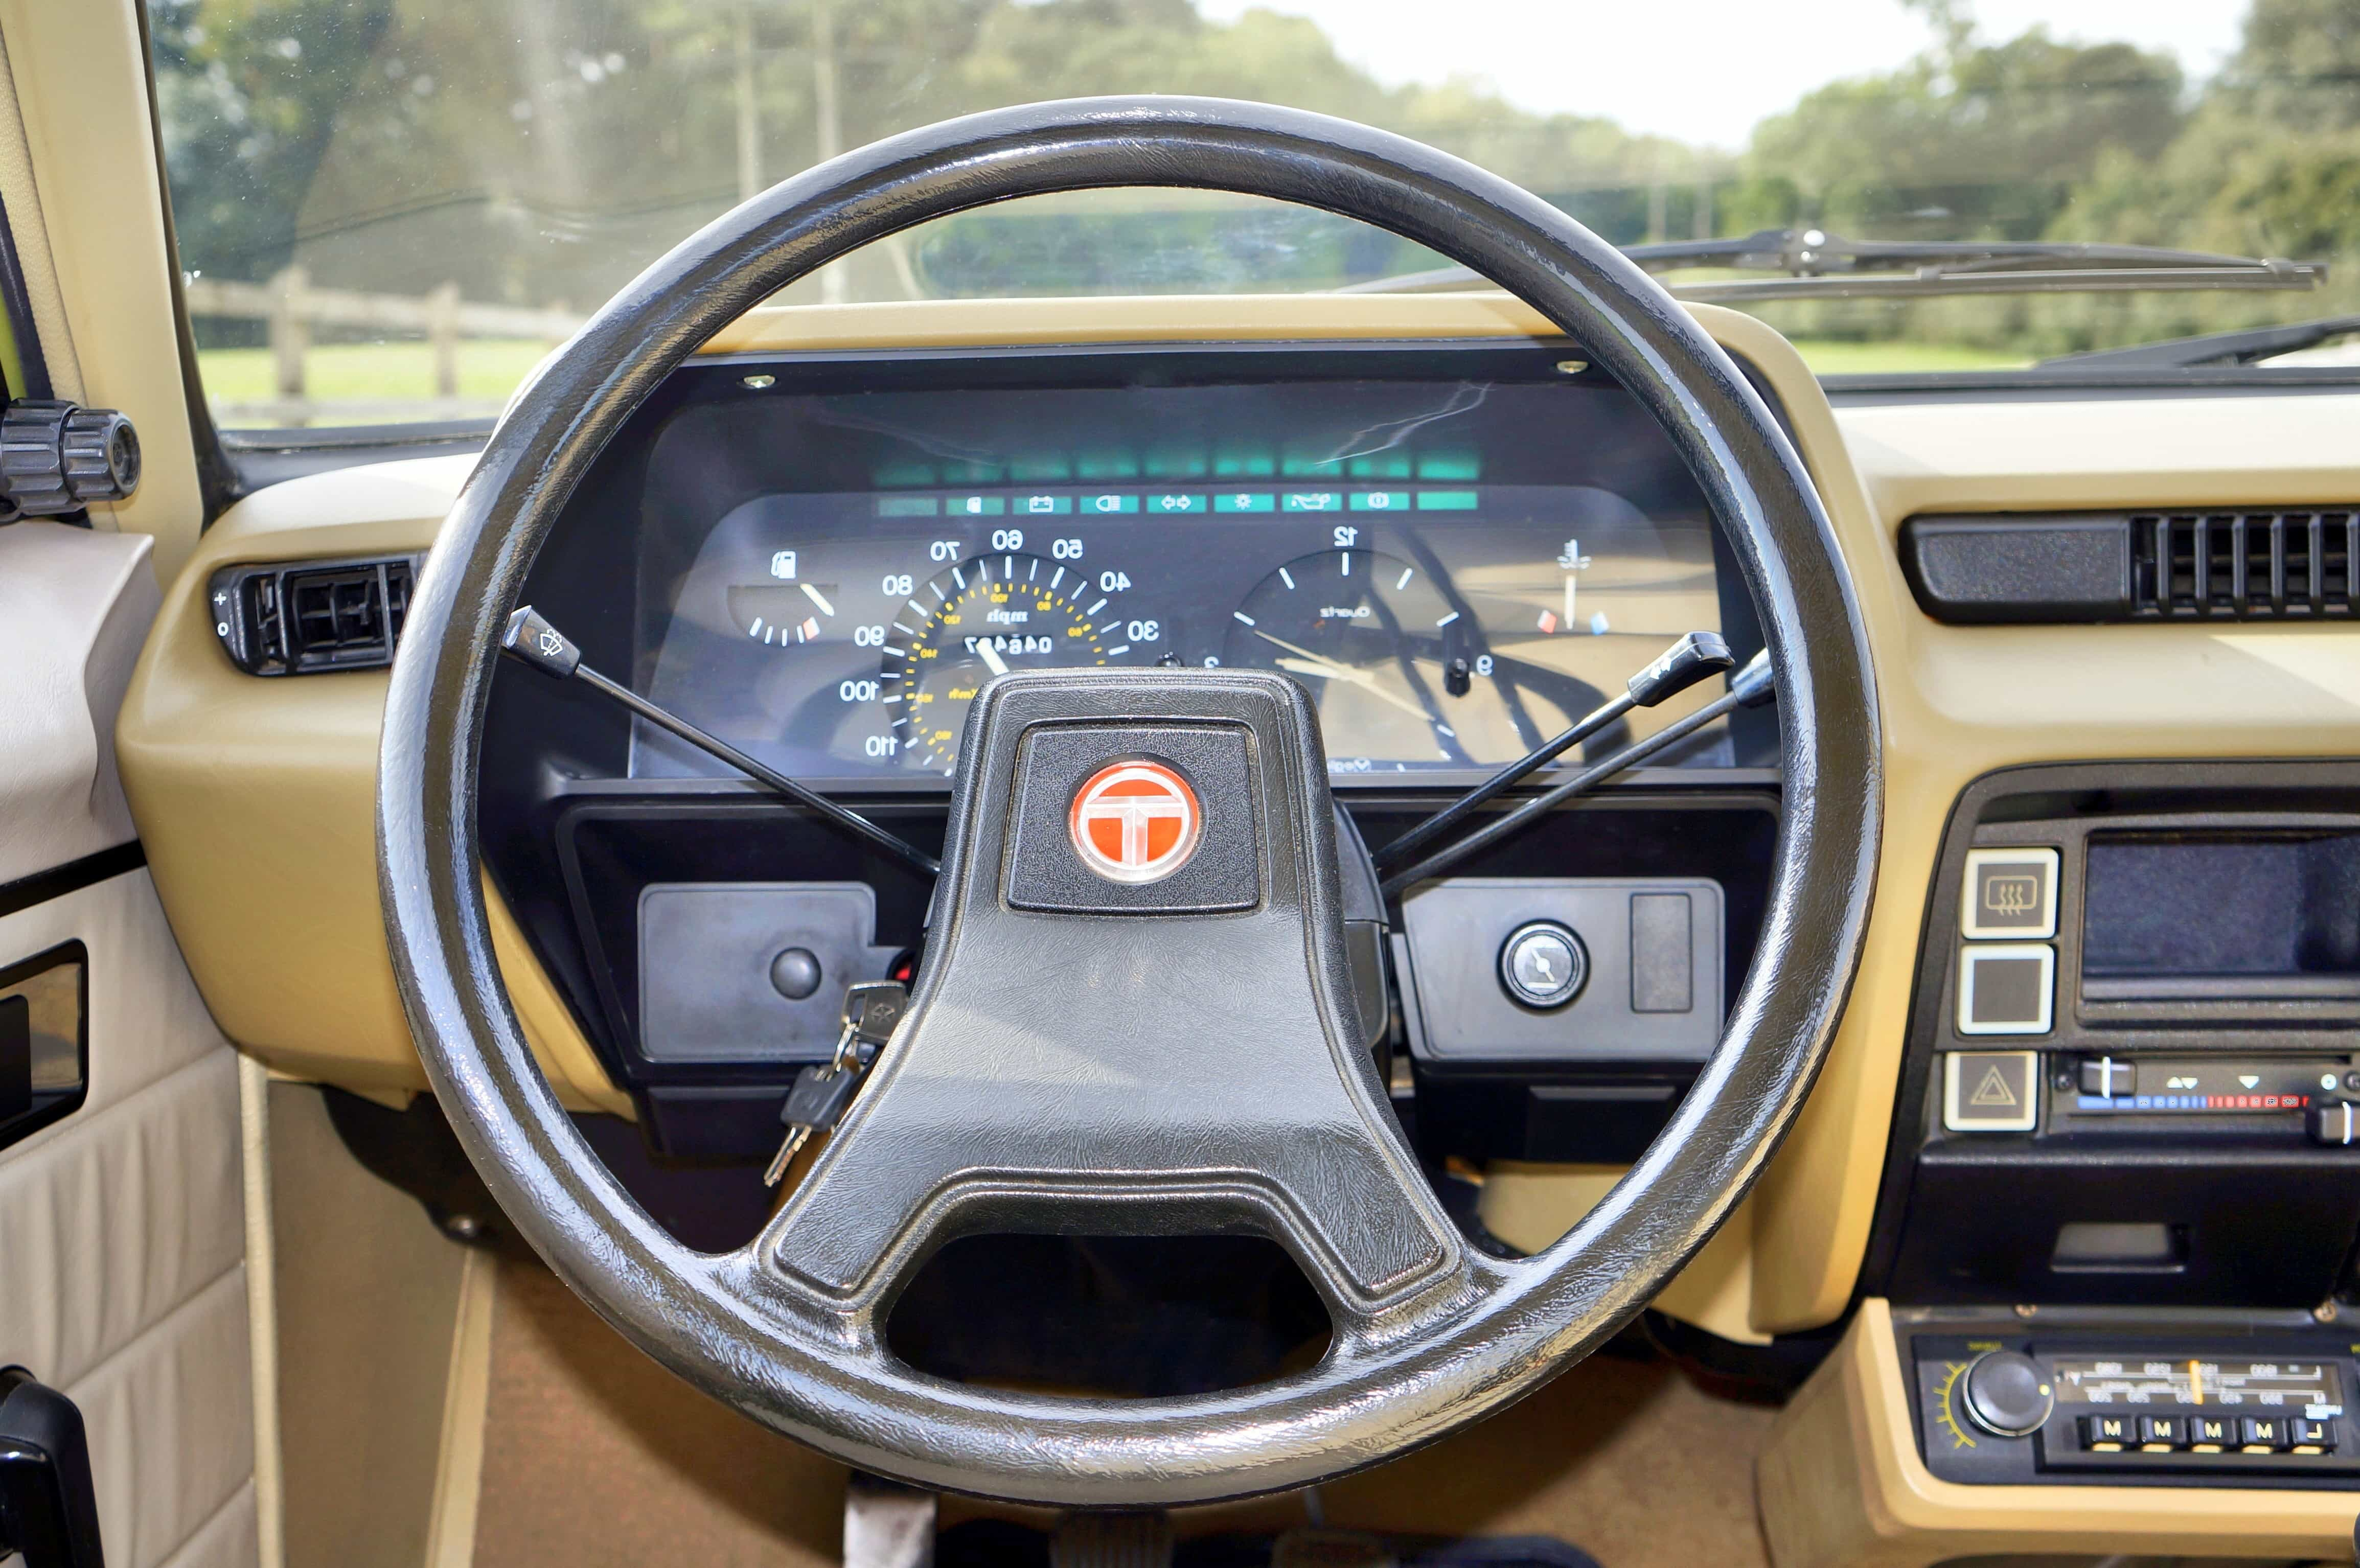 Free picture: vehicle, dashboard, car interior, fast